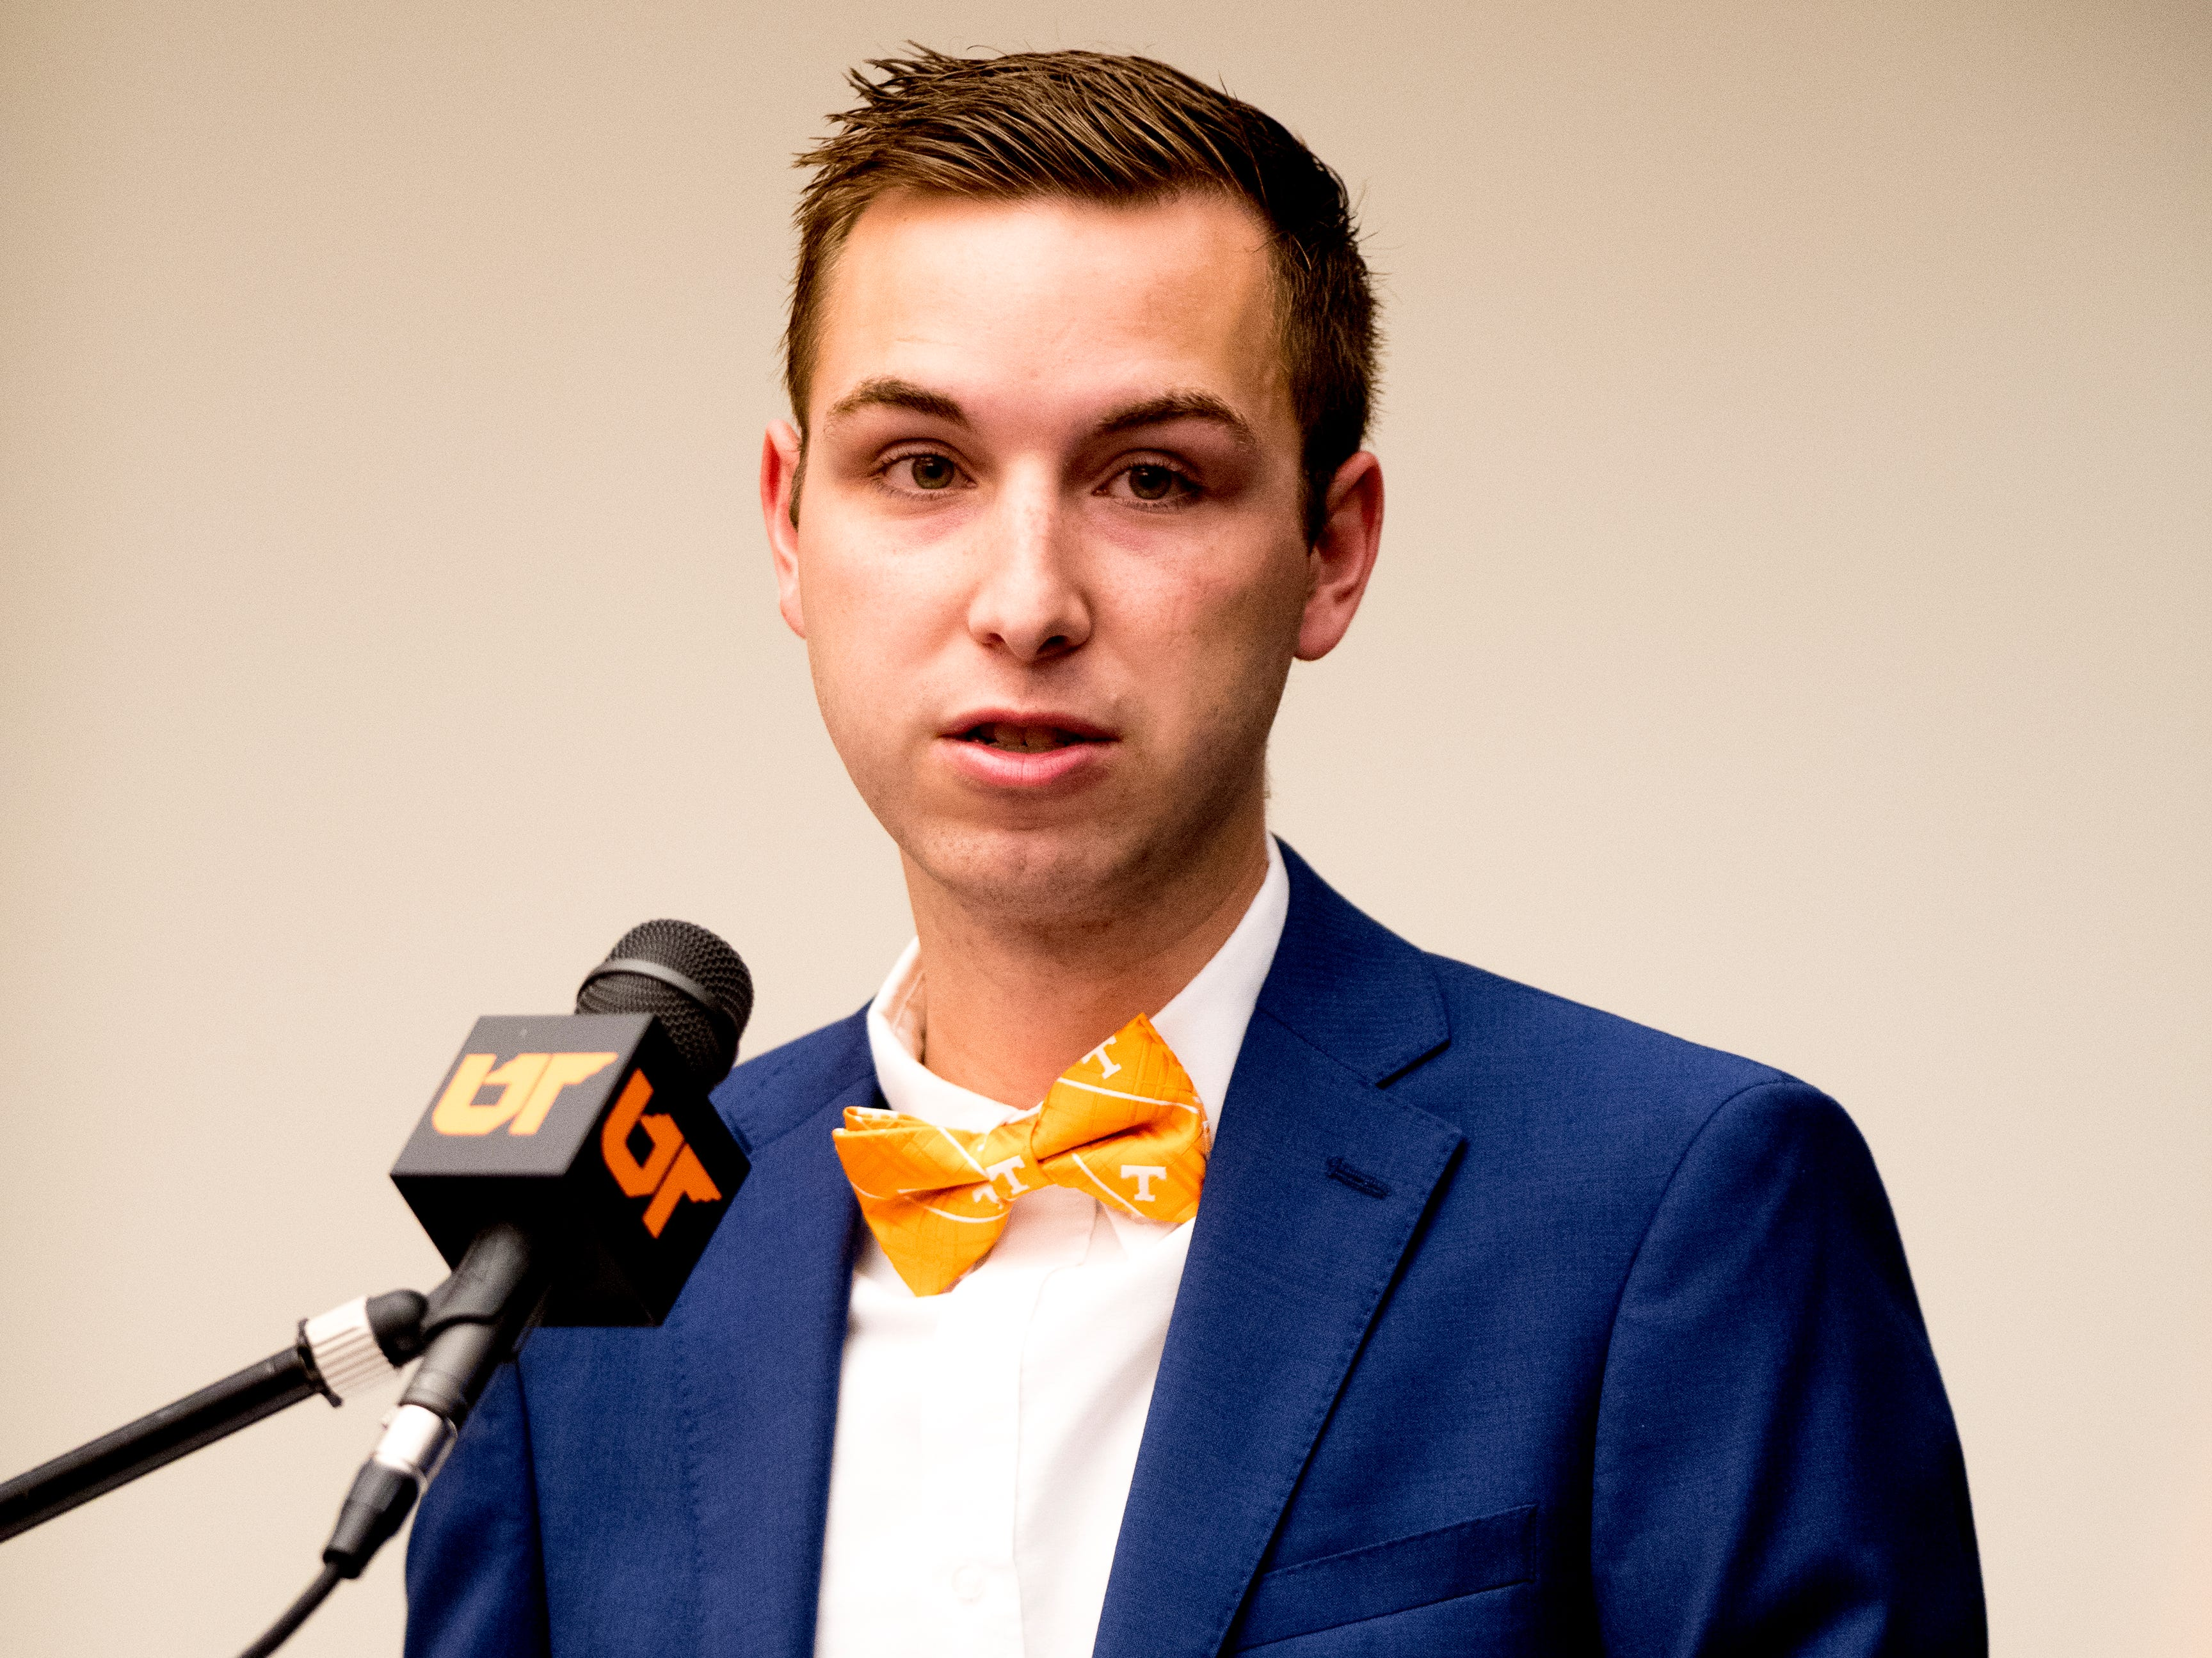 UTK freshman Noah Smith speaks in support of Randy Boyd as UTK interim president during a University of Tennessee Board of Trustees meeting at the UTK Visitor's Center in Knoxville, Tennessee on Tuesday, September 25, 2018. The board met to discuss several topics including the installment of an interim president.